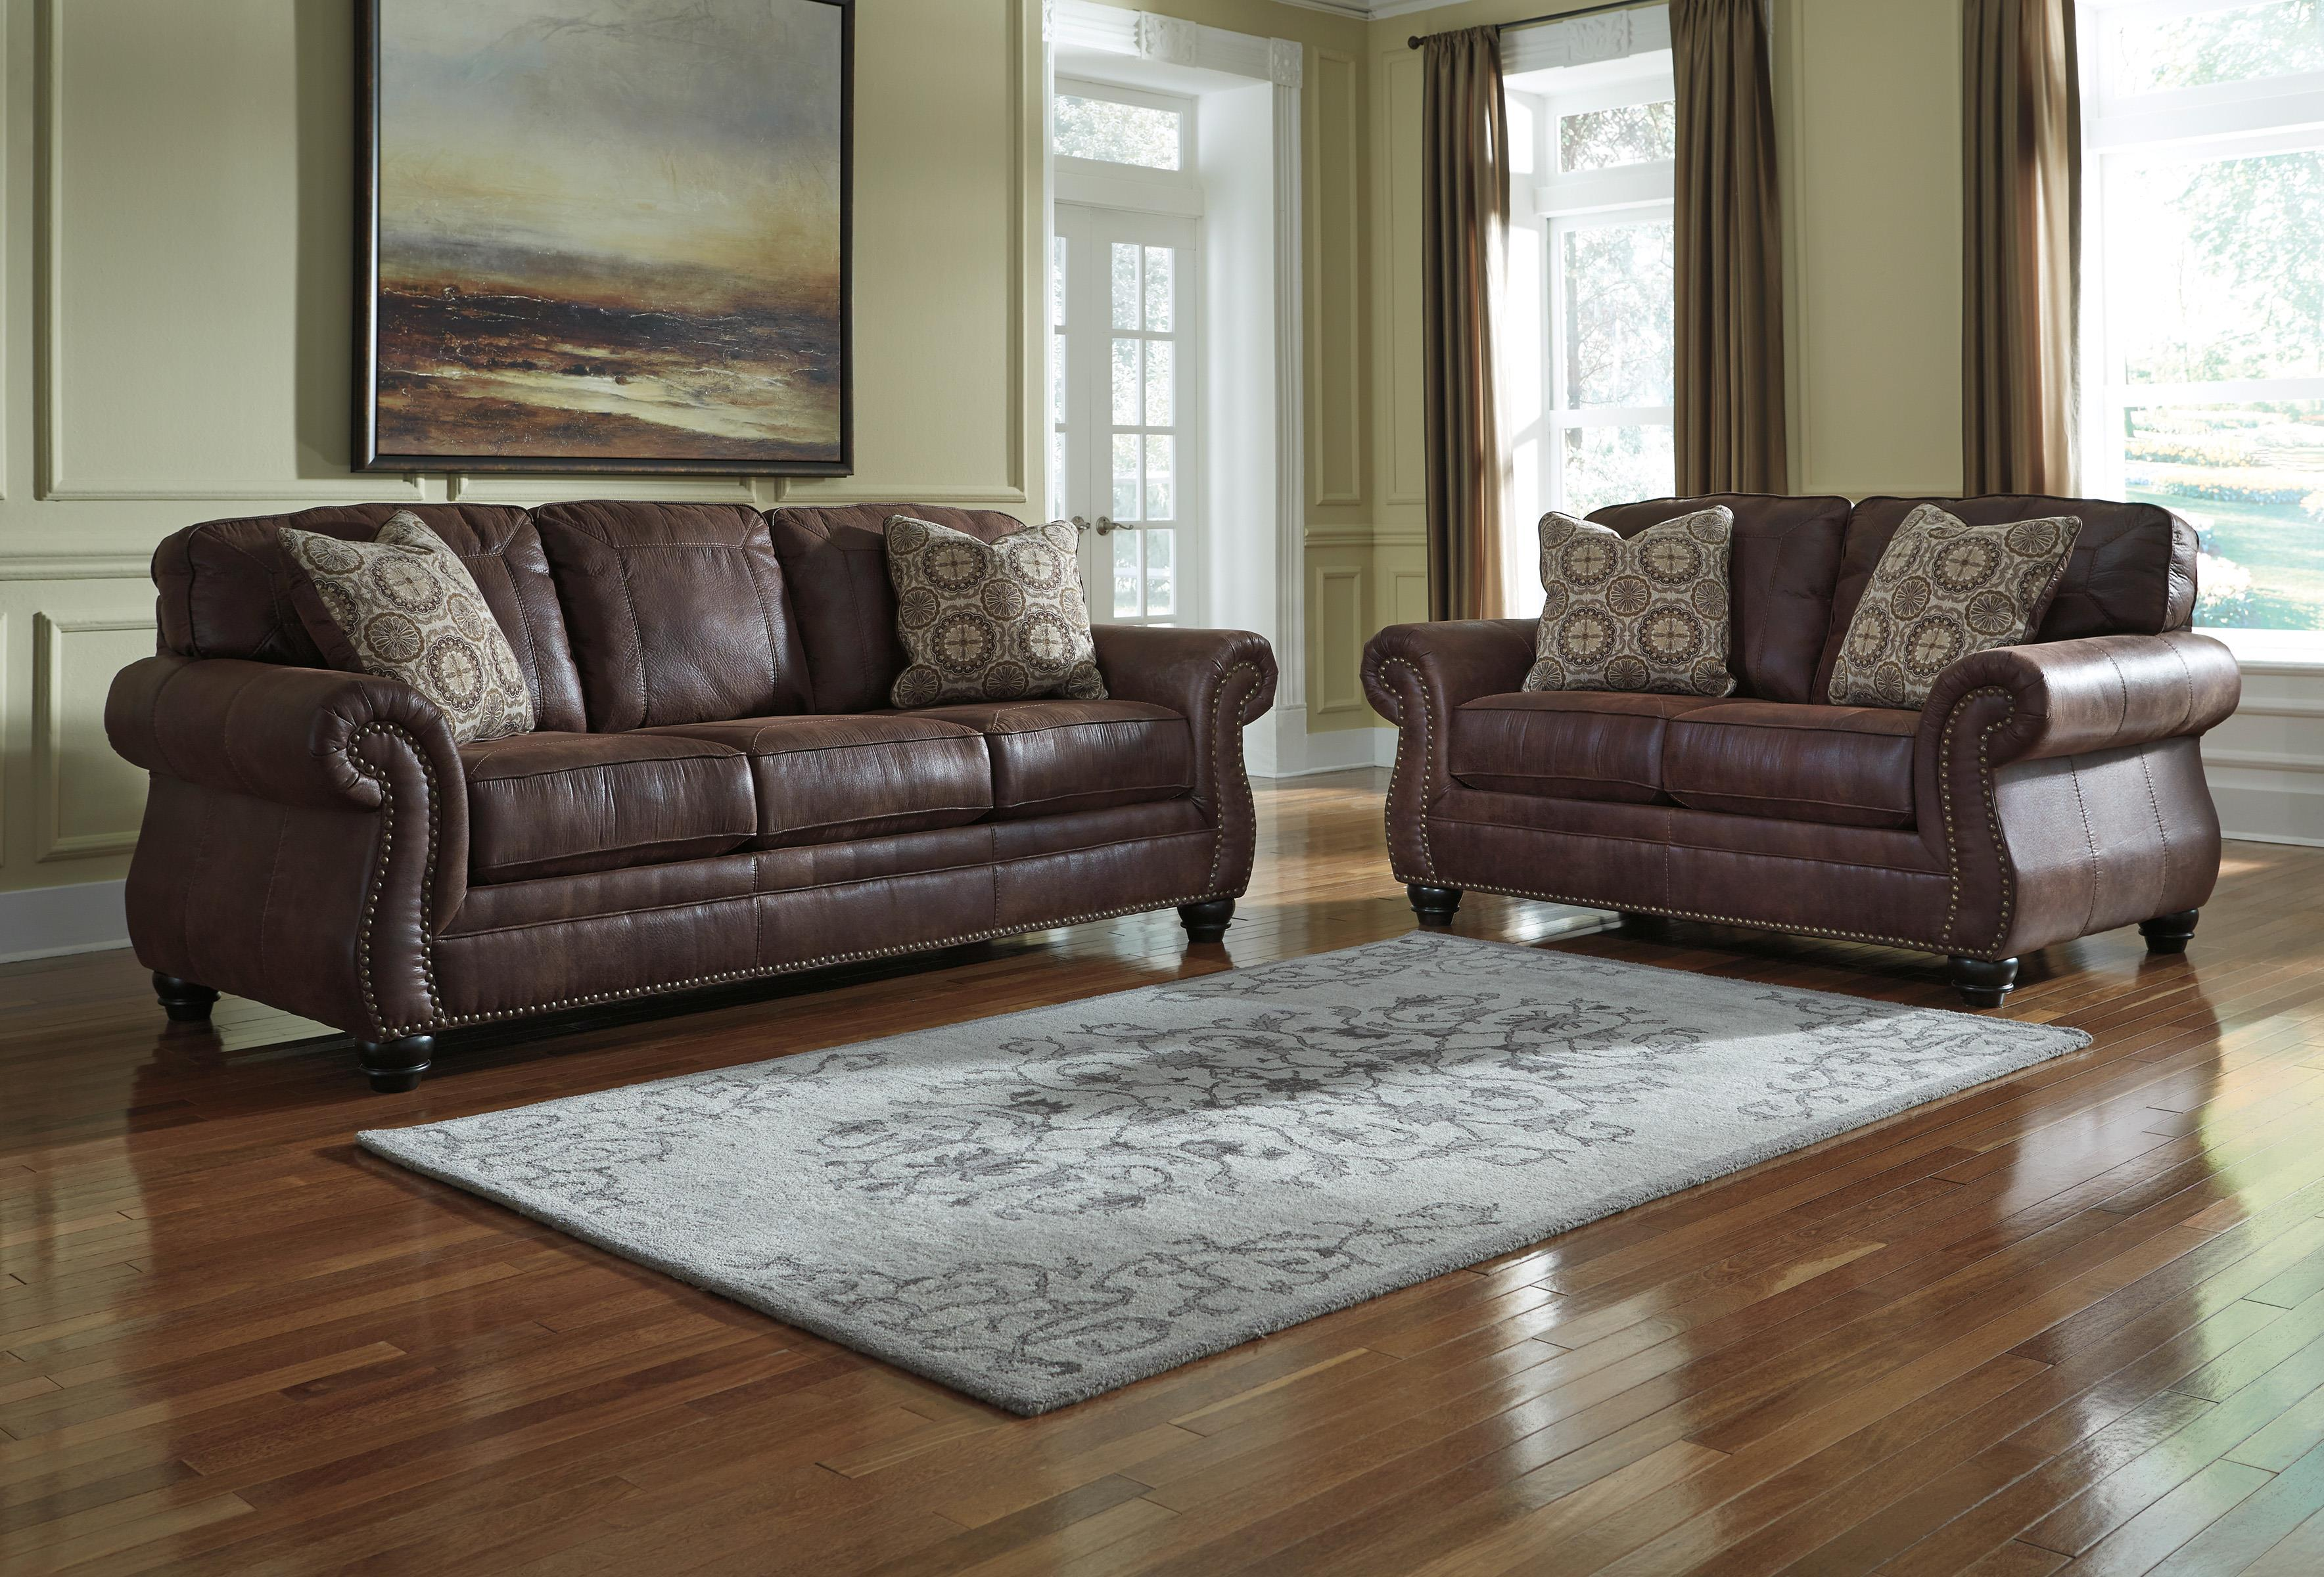 Breville Stationary Living Room Group by Benchcraft at Furniture Barn